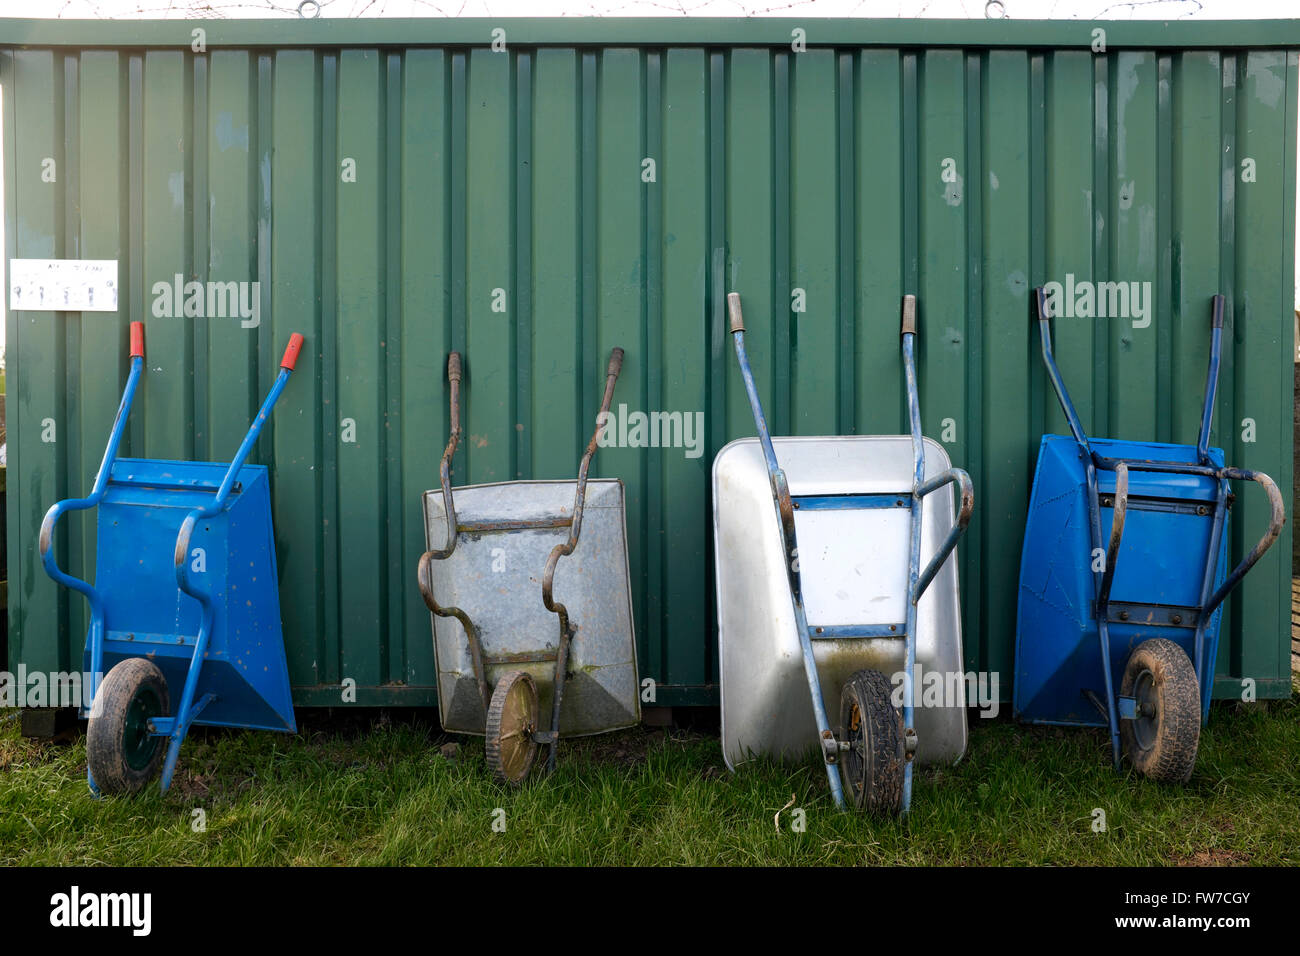 Wheelbarrows lined up at an allotment, Shropshire, England, UK - Stock Image